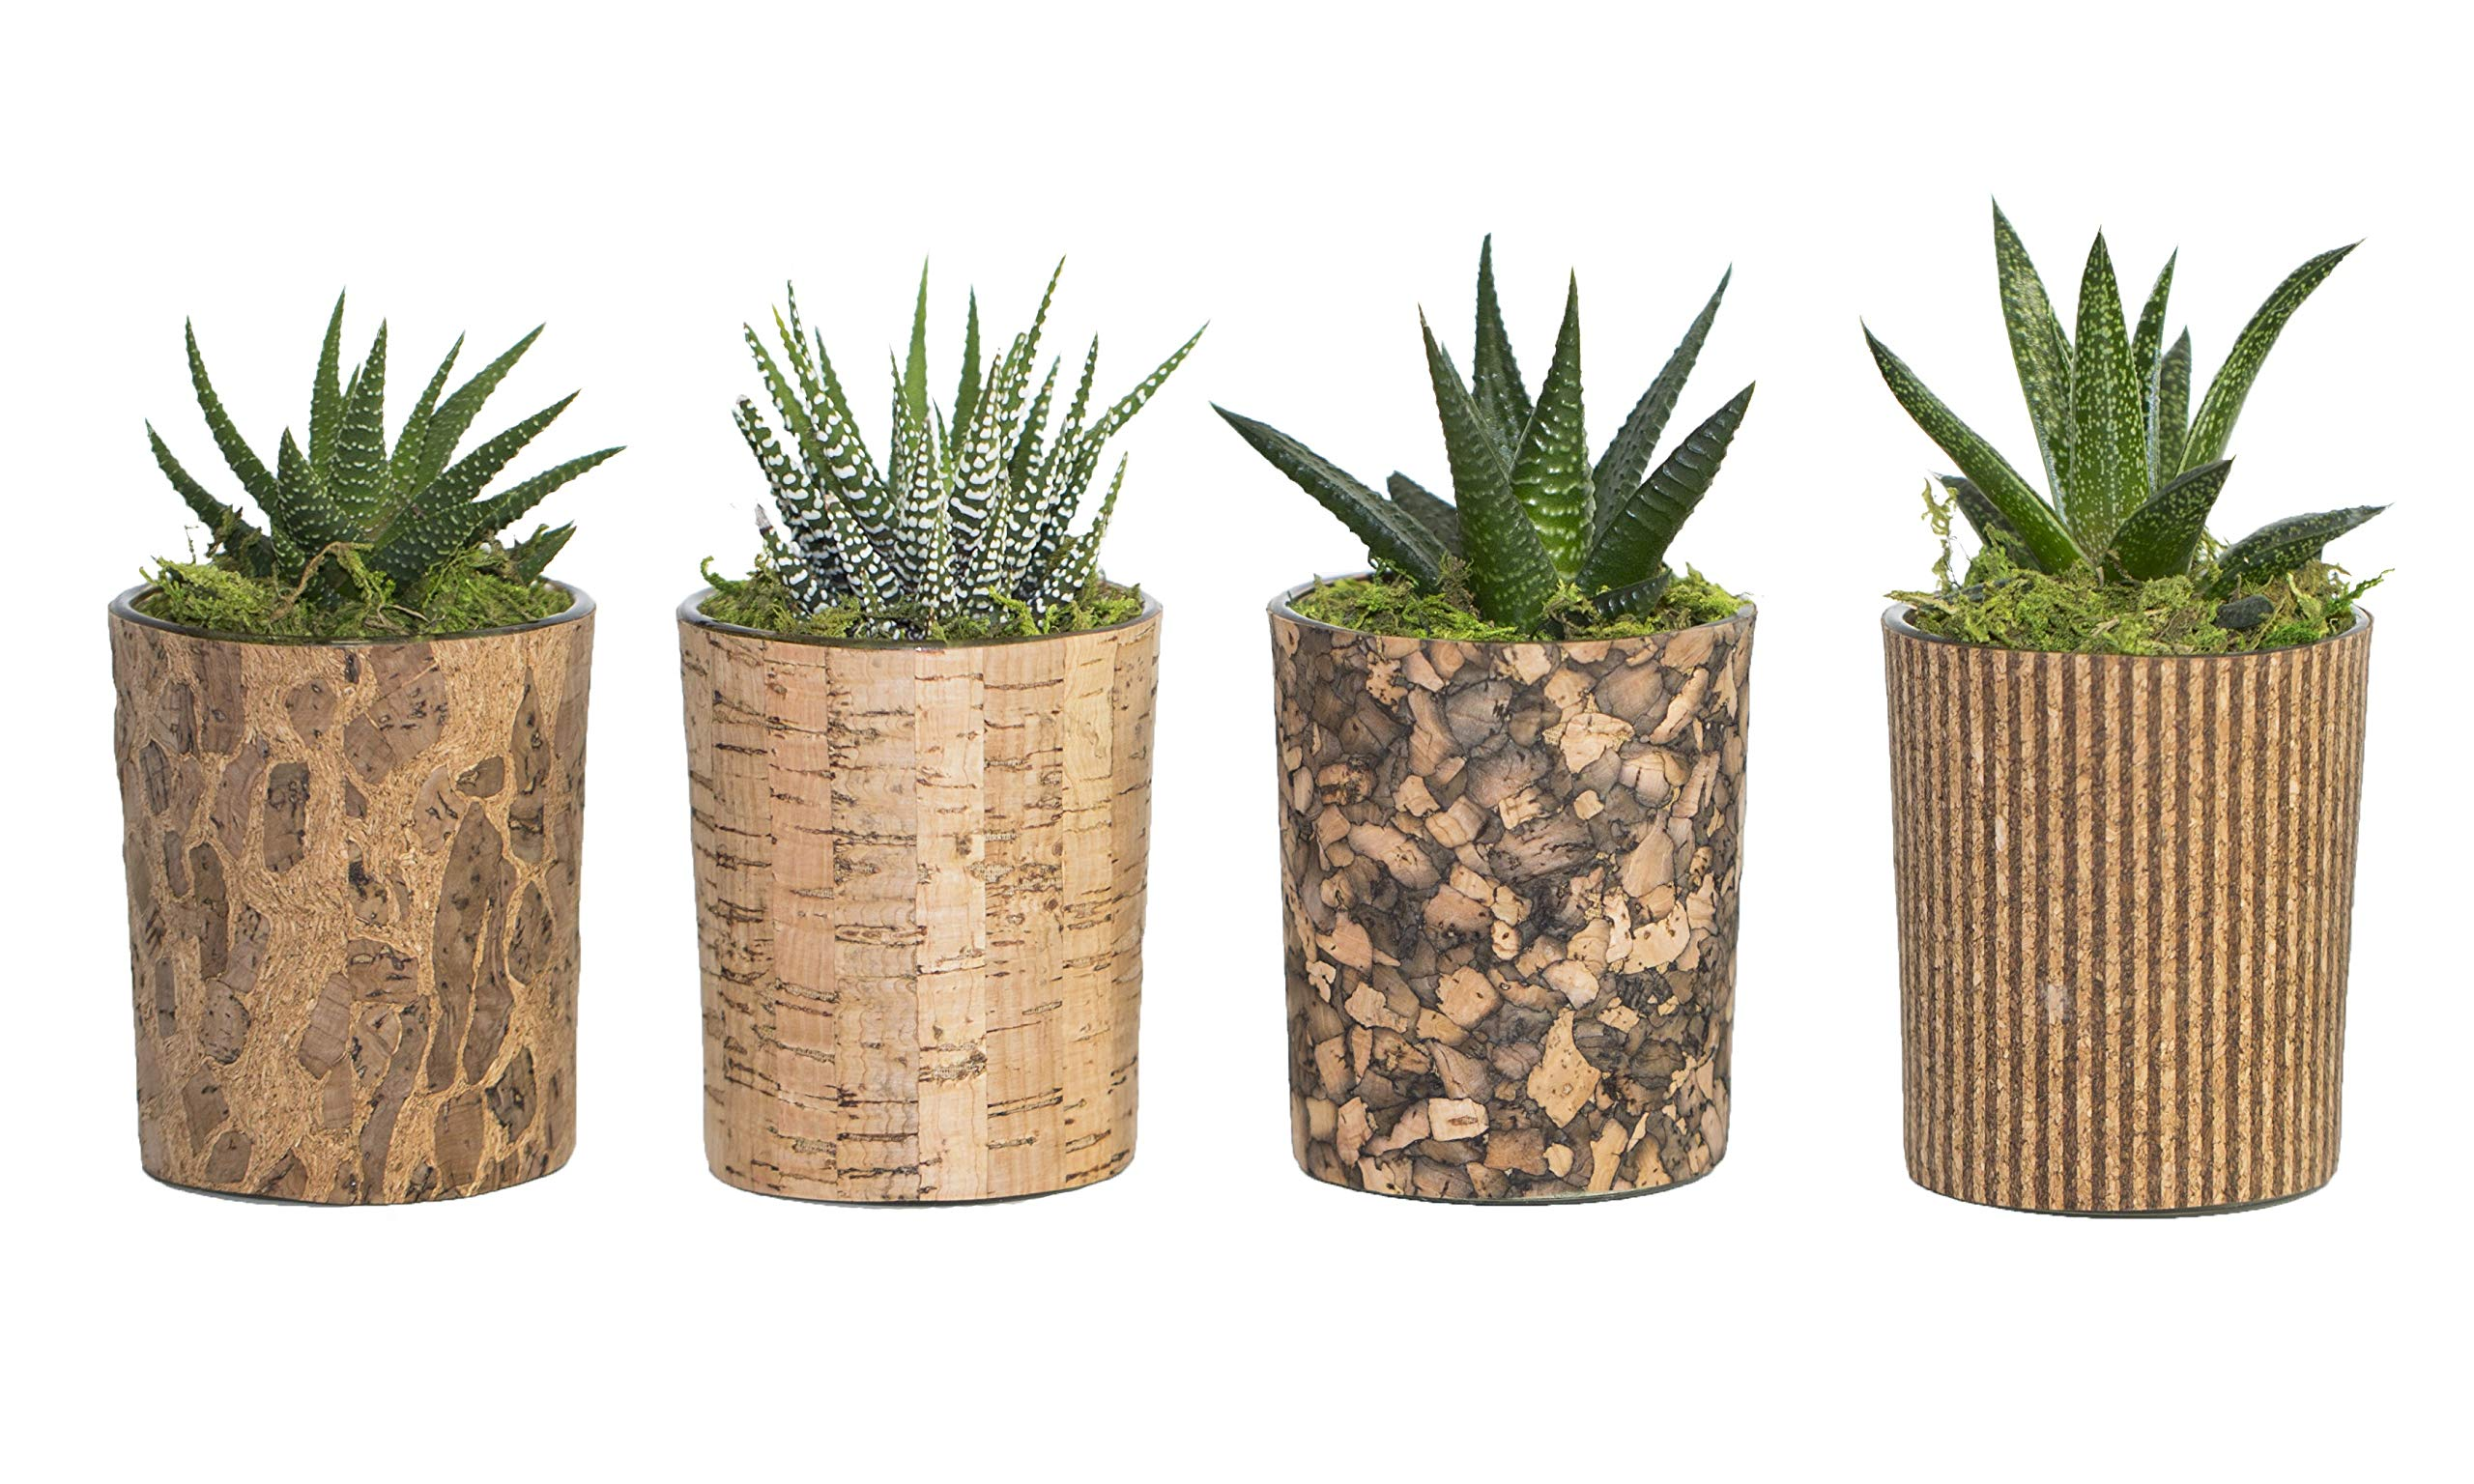 Live Succulents in Glass and Cork Containers Set of 4, From Hallmark Flowers by Hallmark Flowers (Image #1)